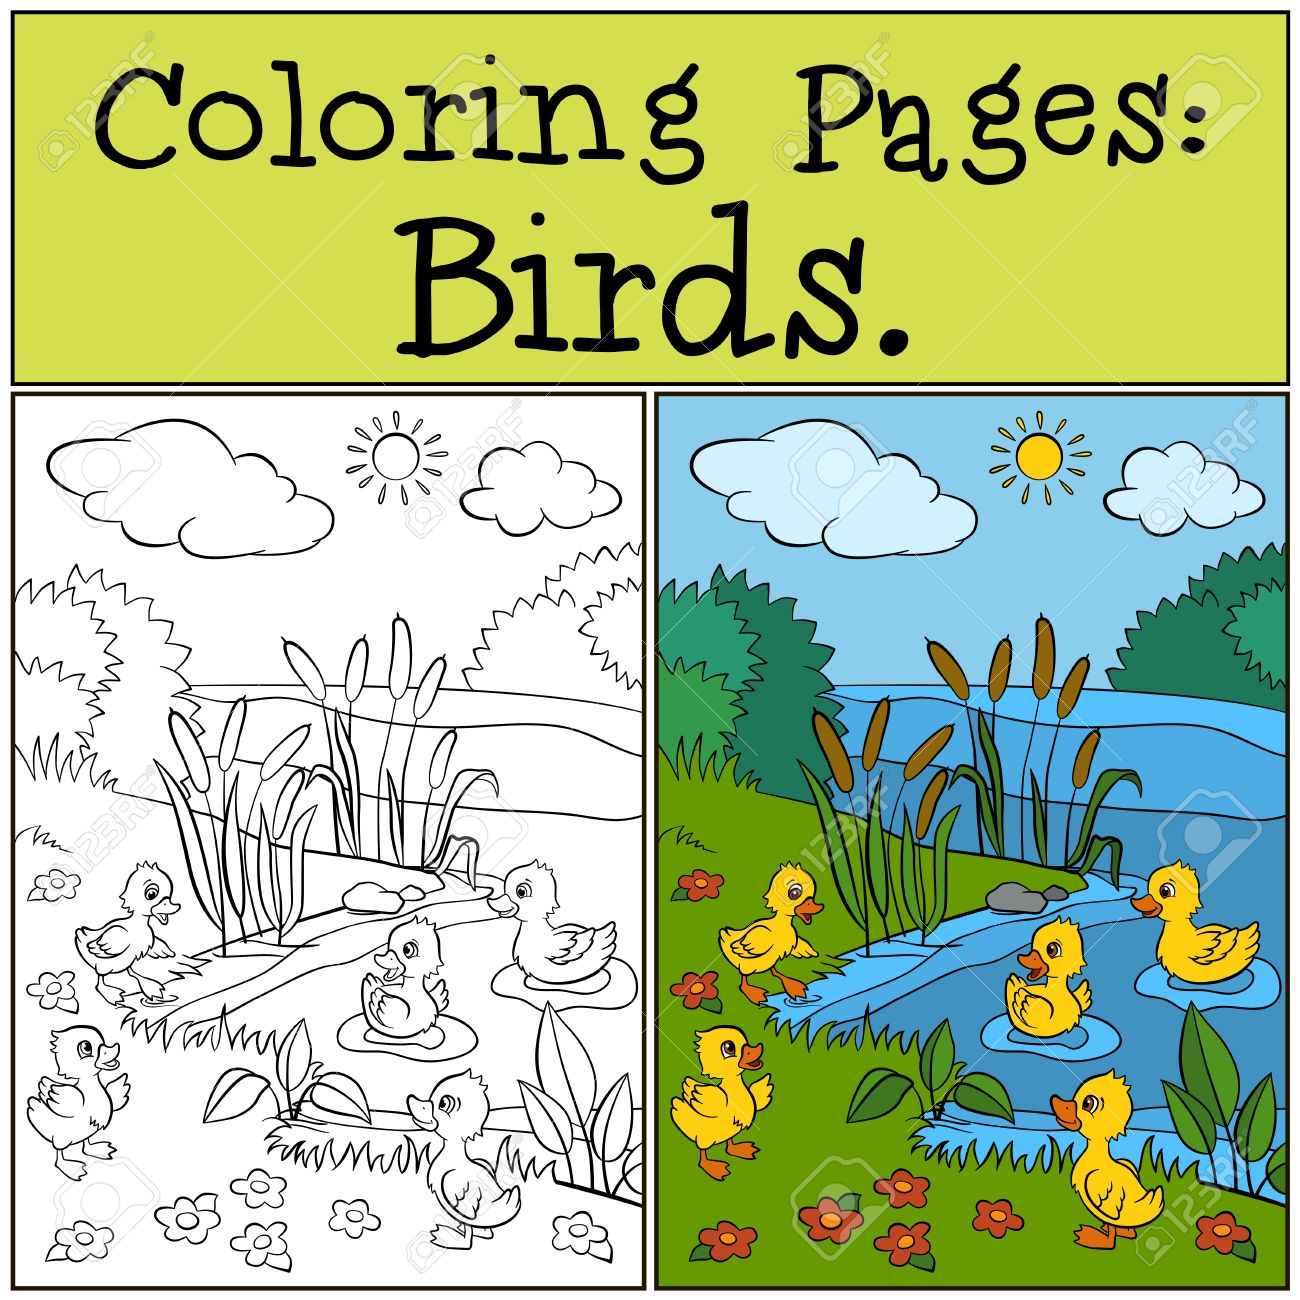 Coloring Pages: Birds. Little Cute Ducklings Play Near The Pond ...